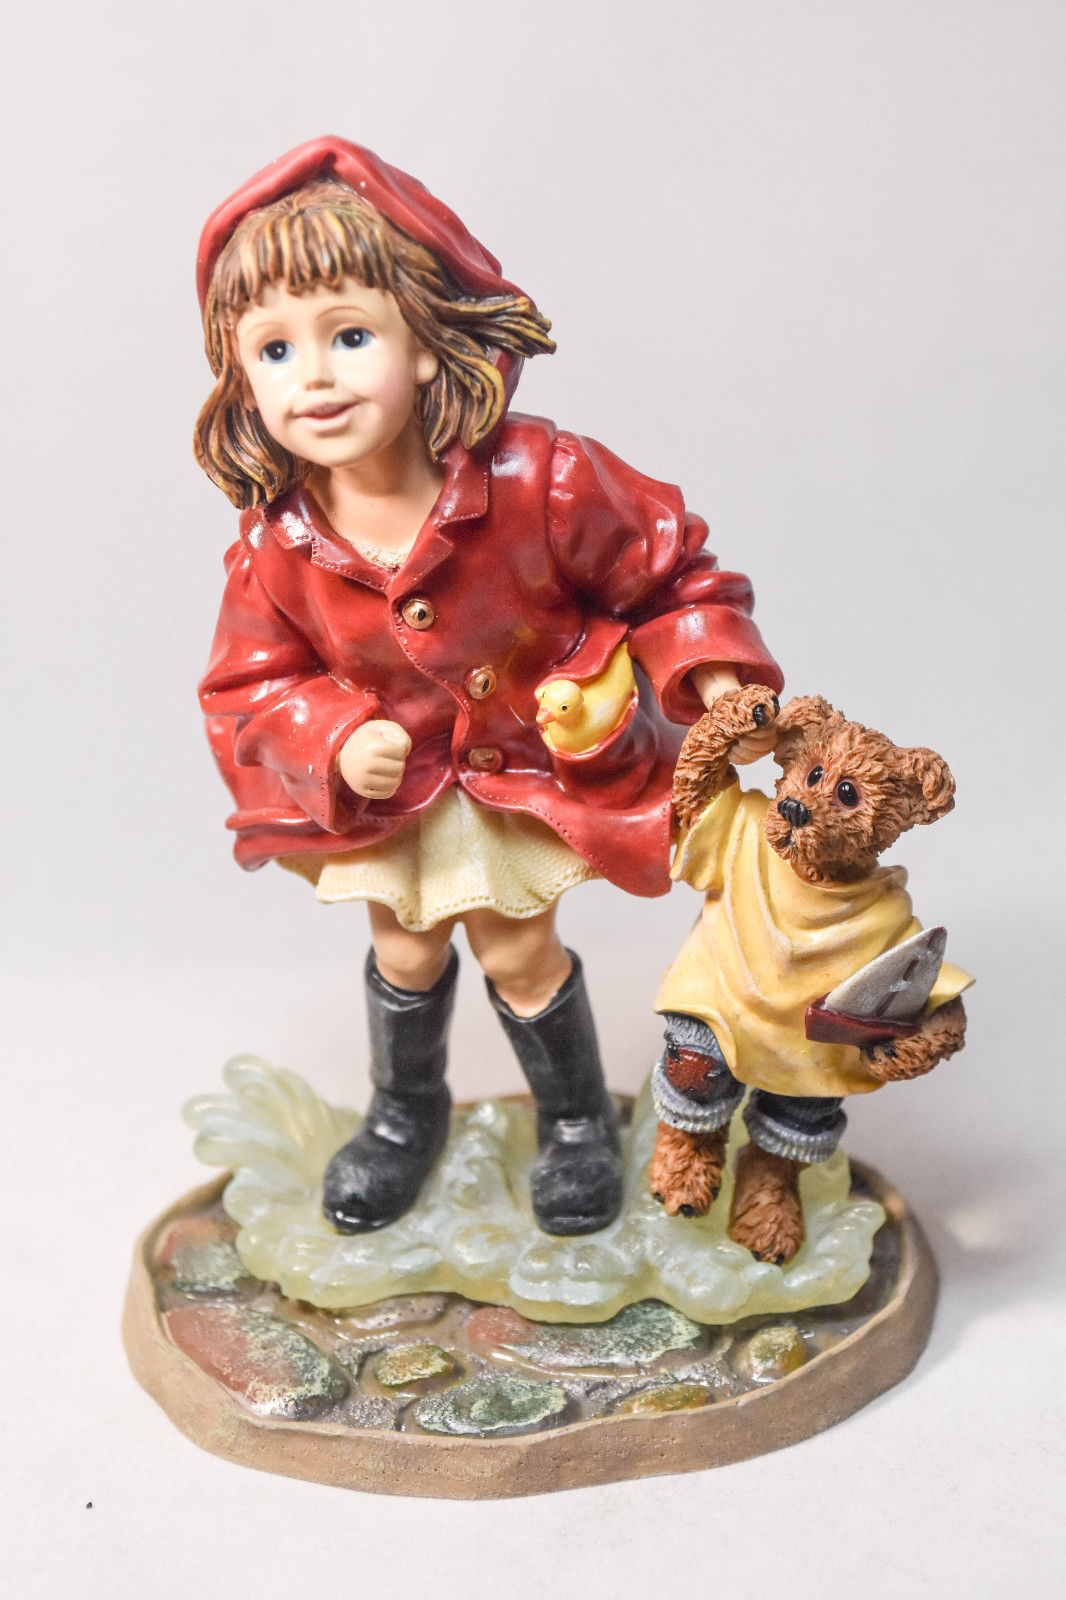 Boyds Bears: Brooke With Joshua - Puddle Jumpers - #3551 - 1st Edition - 1E/3304